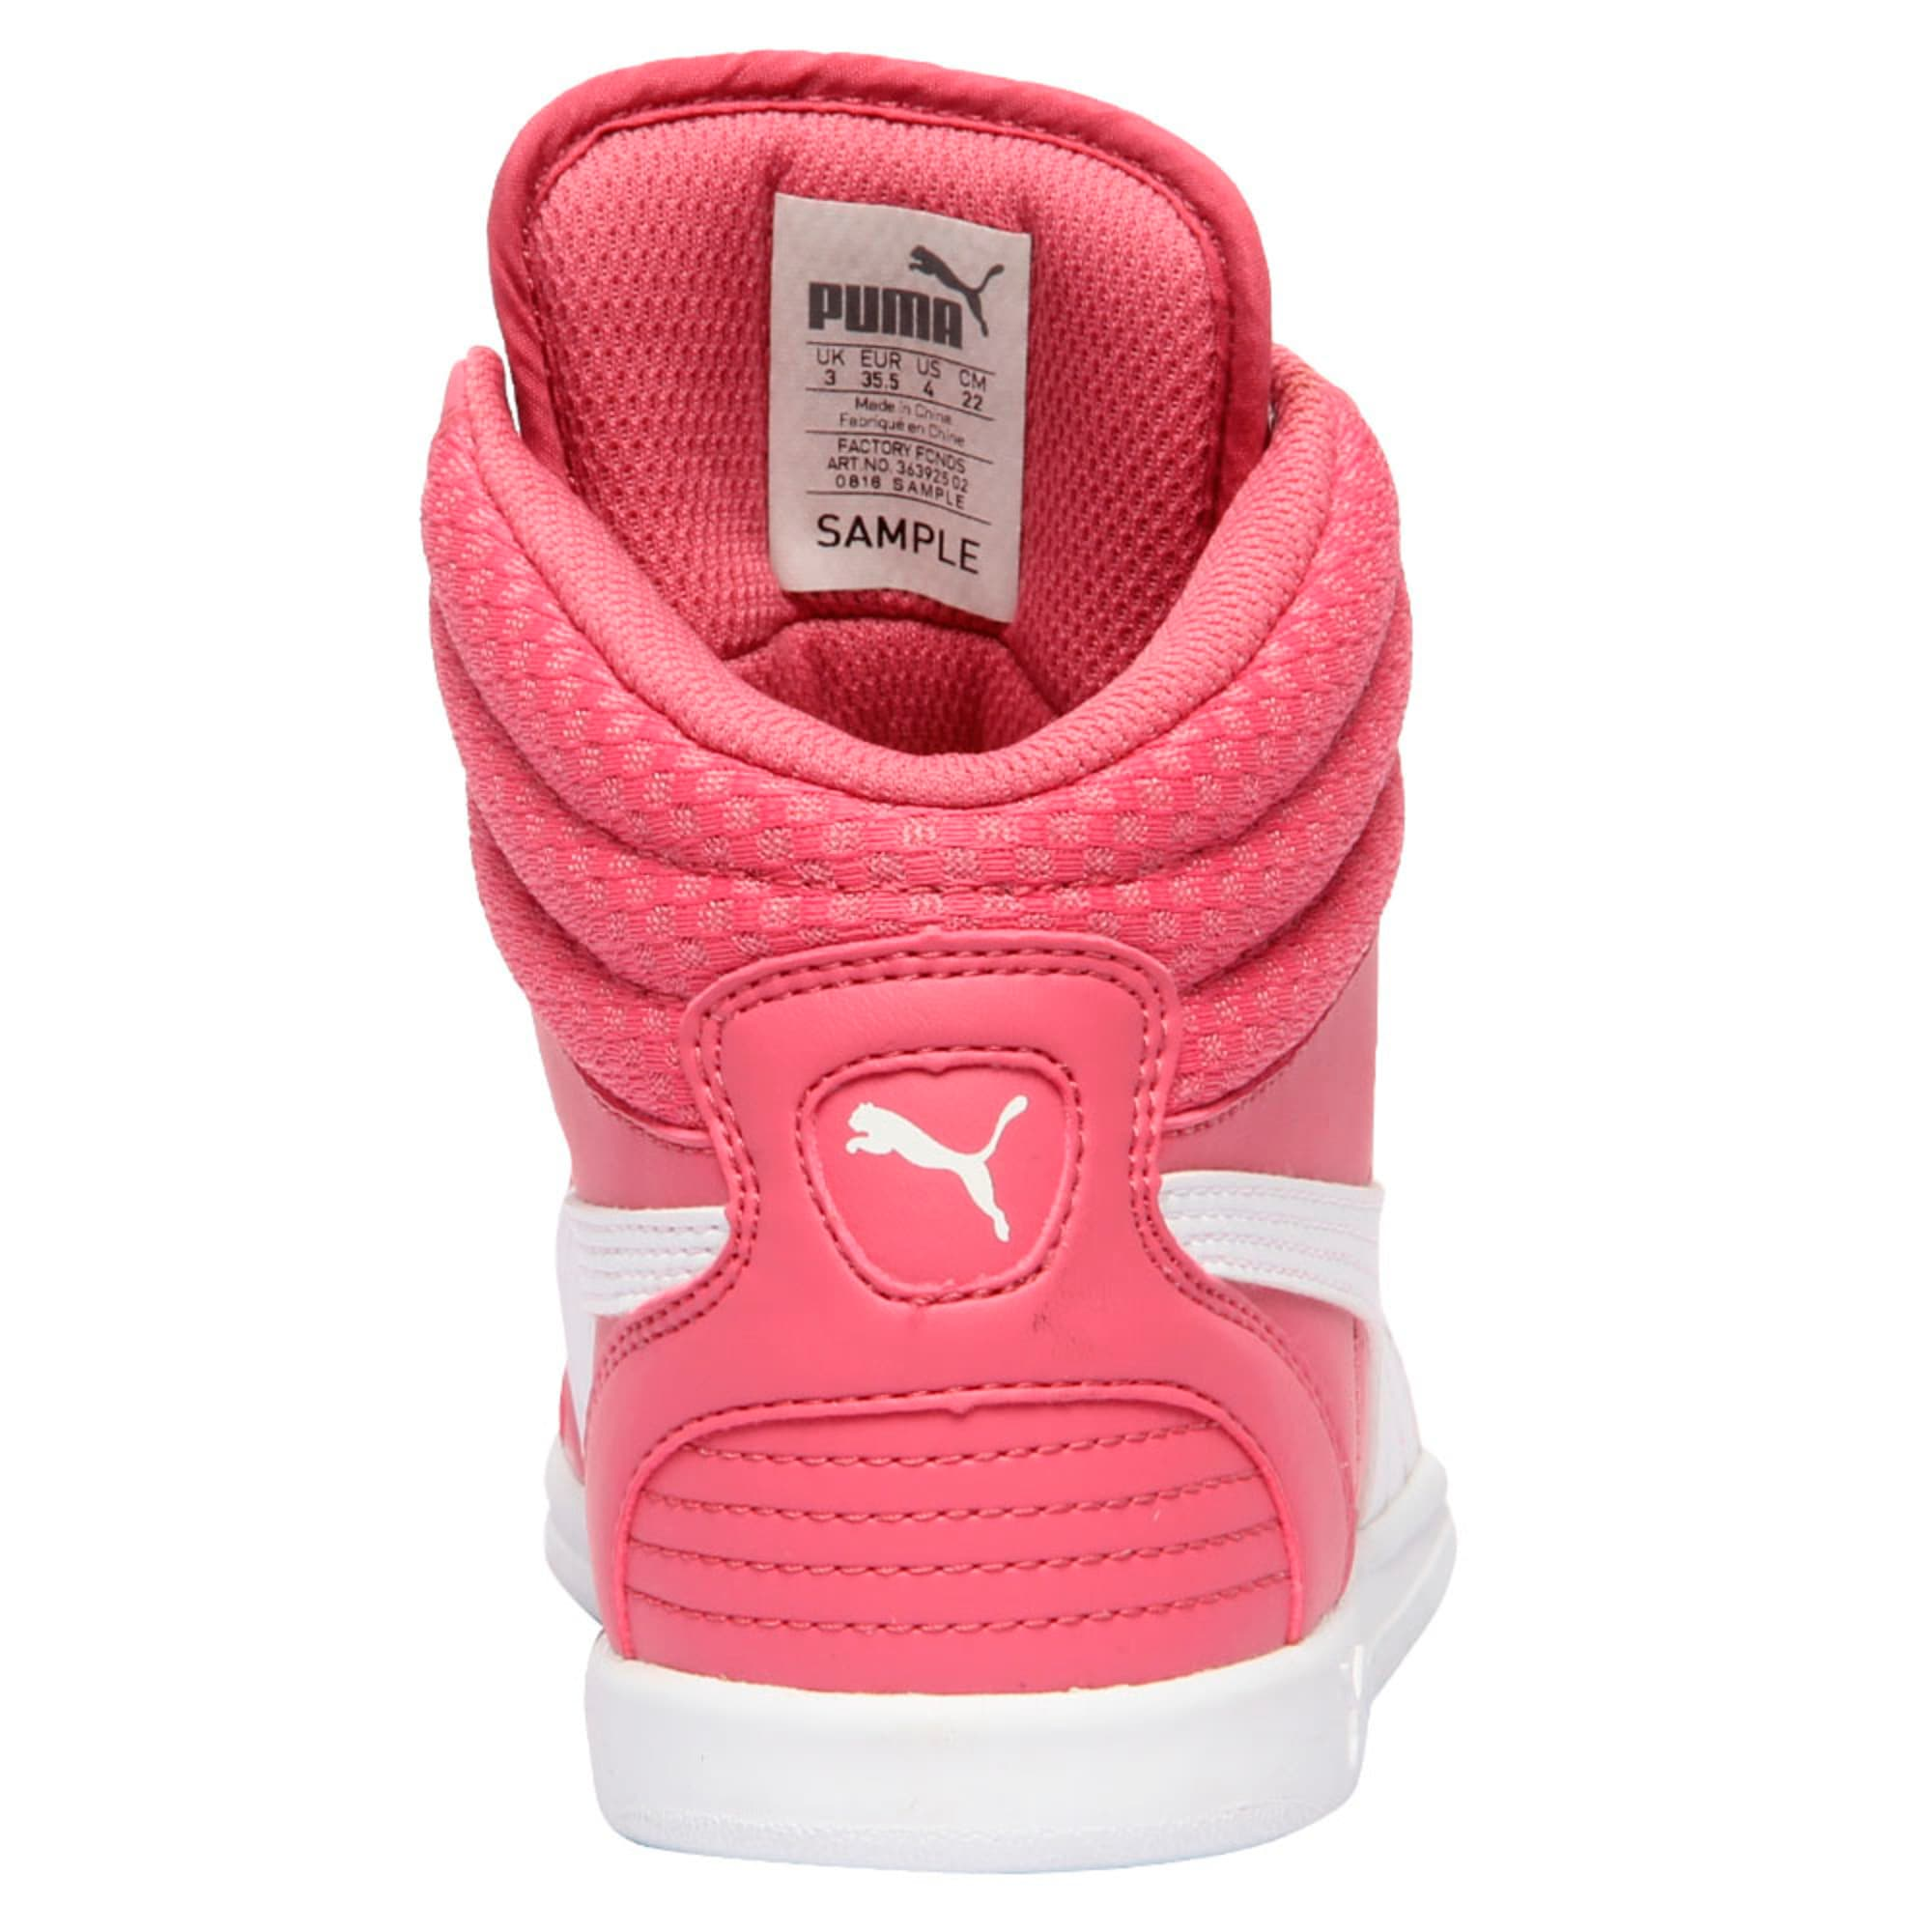 Thumbnail 4 of Puma Ikaz Mid v2 Jr, Rapture Rose-Puma White, medium-IND